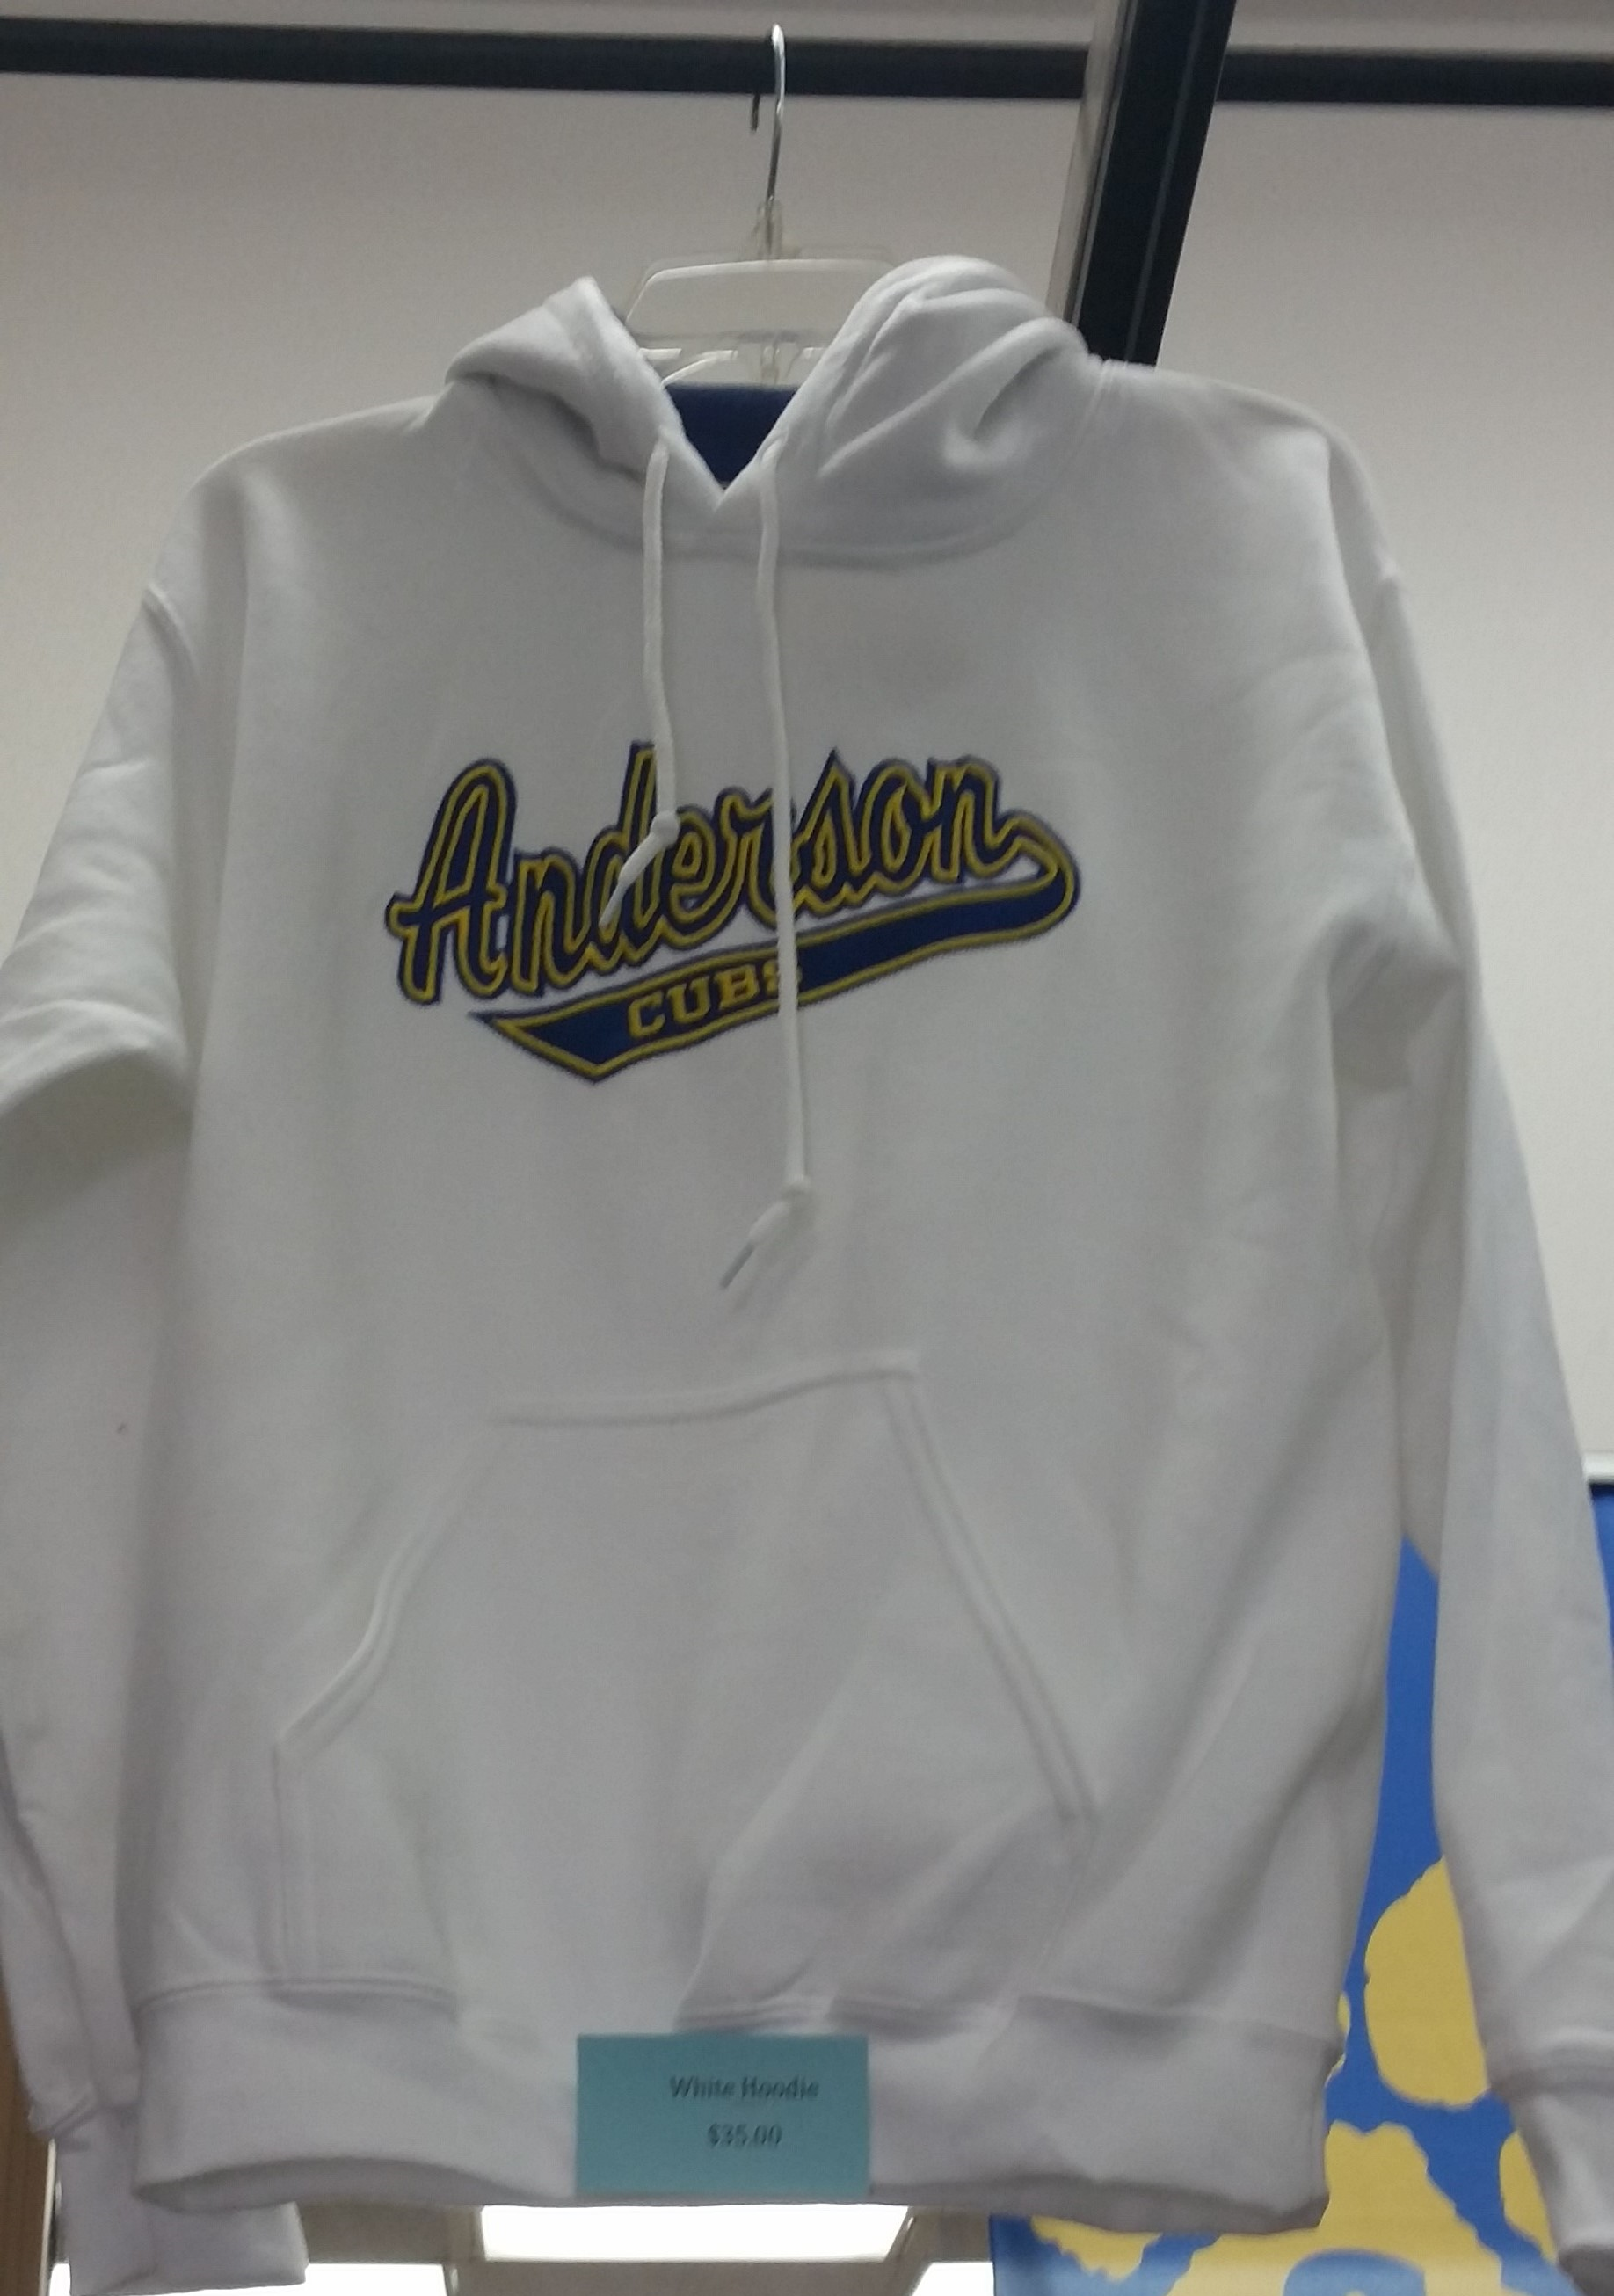 Anderson Cubs Sweatshirt - White